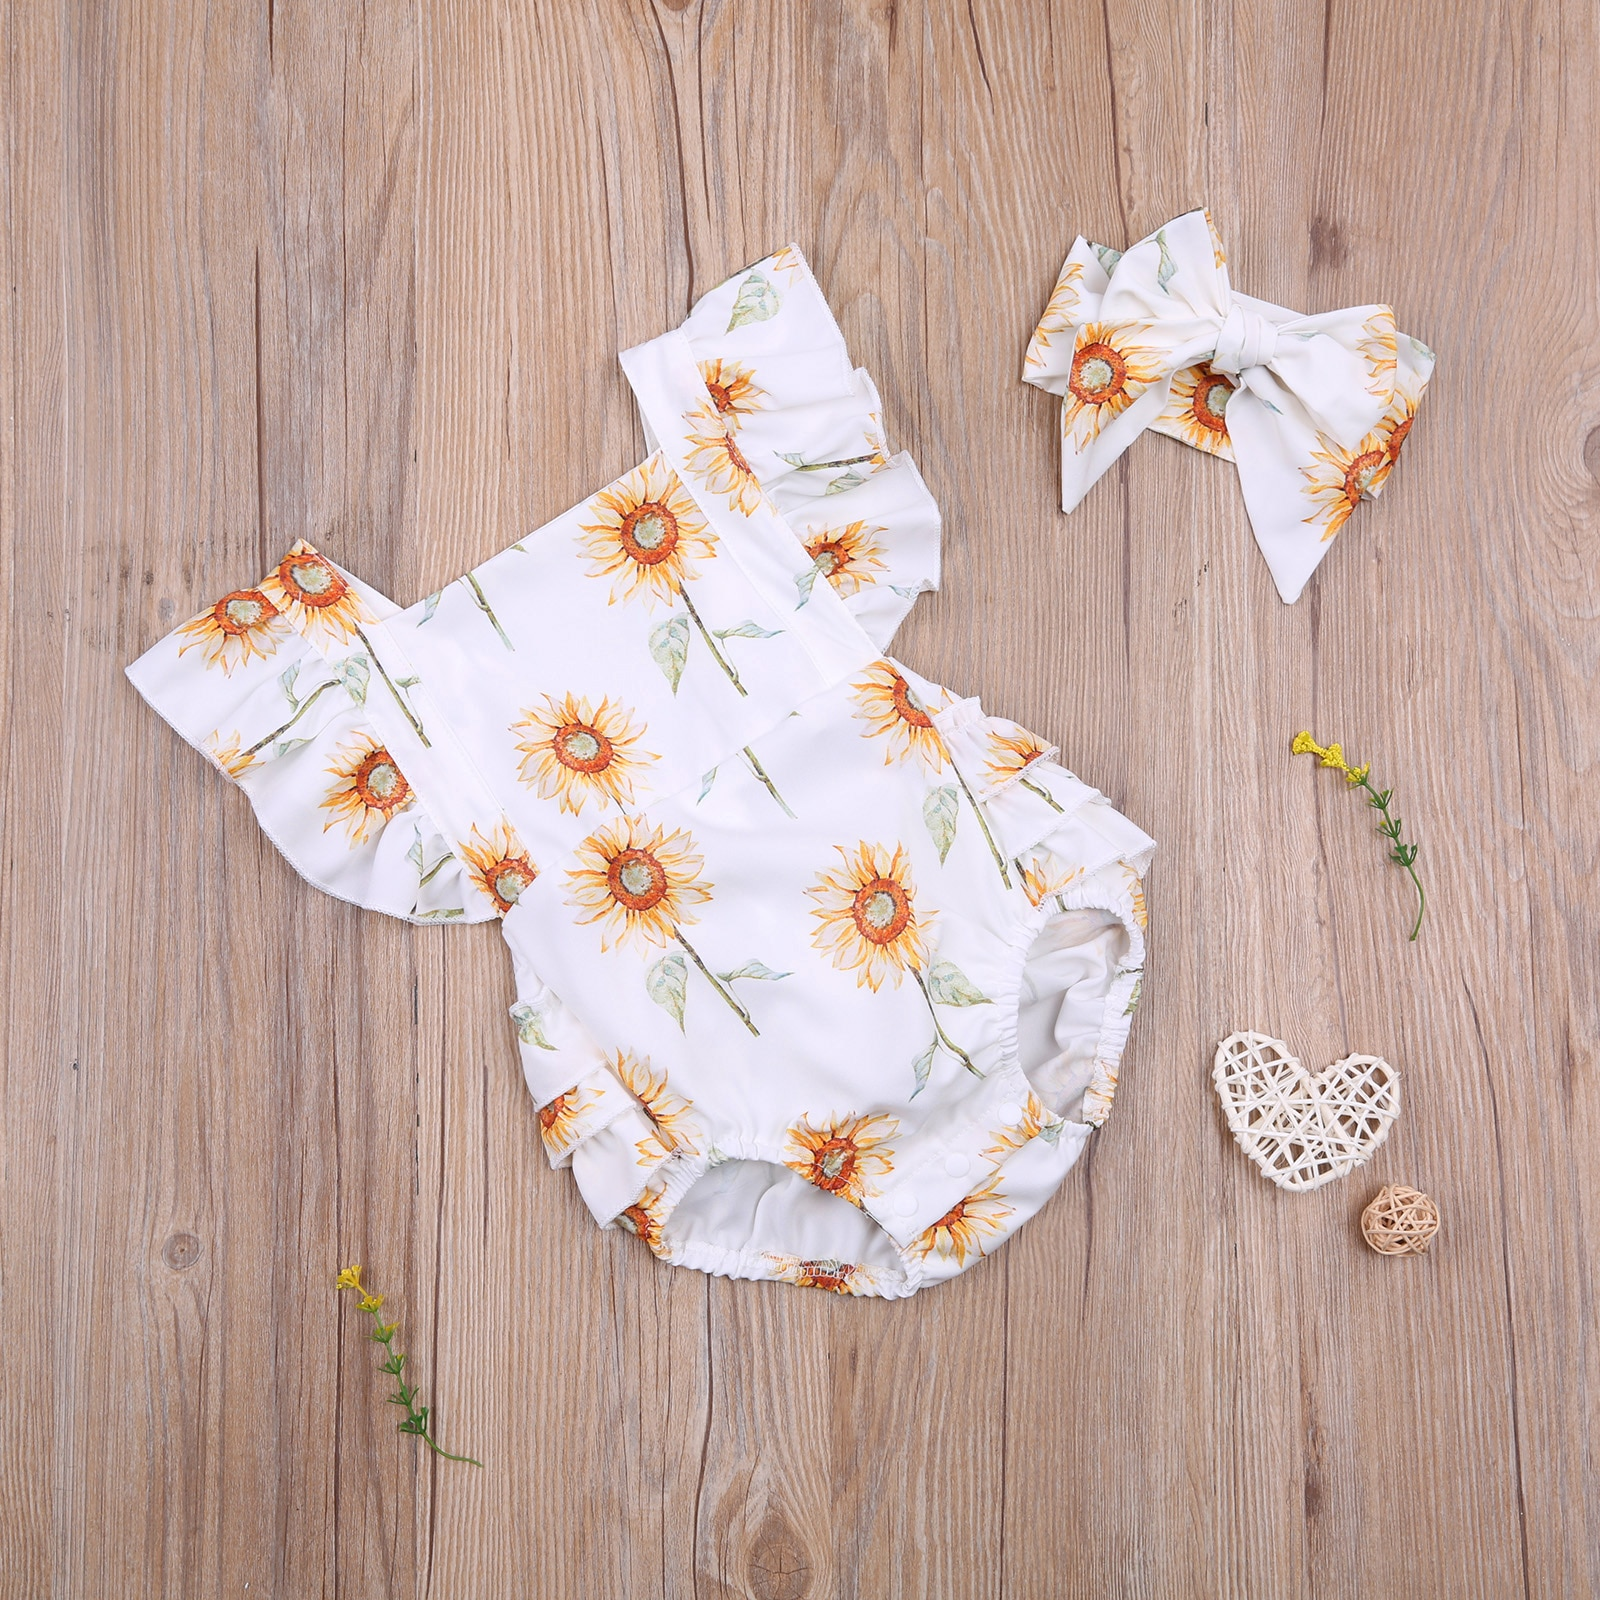 0-24M Baby Girl's 2Pcs Breathable Outfit, Creative Sunflower Printing Fresh Fly Sleeve Suspender Romper + Bow Headwear Summer